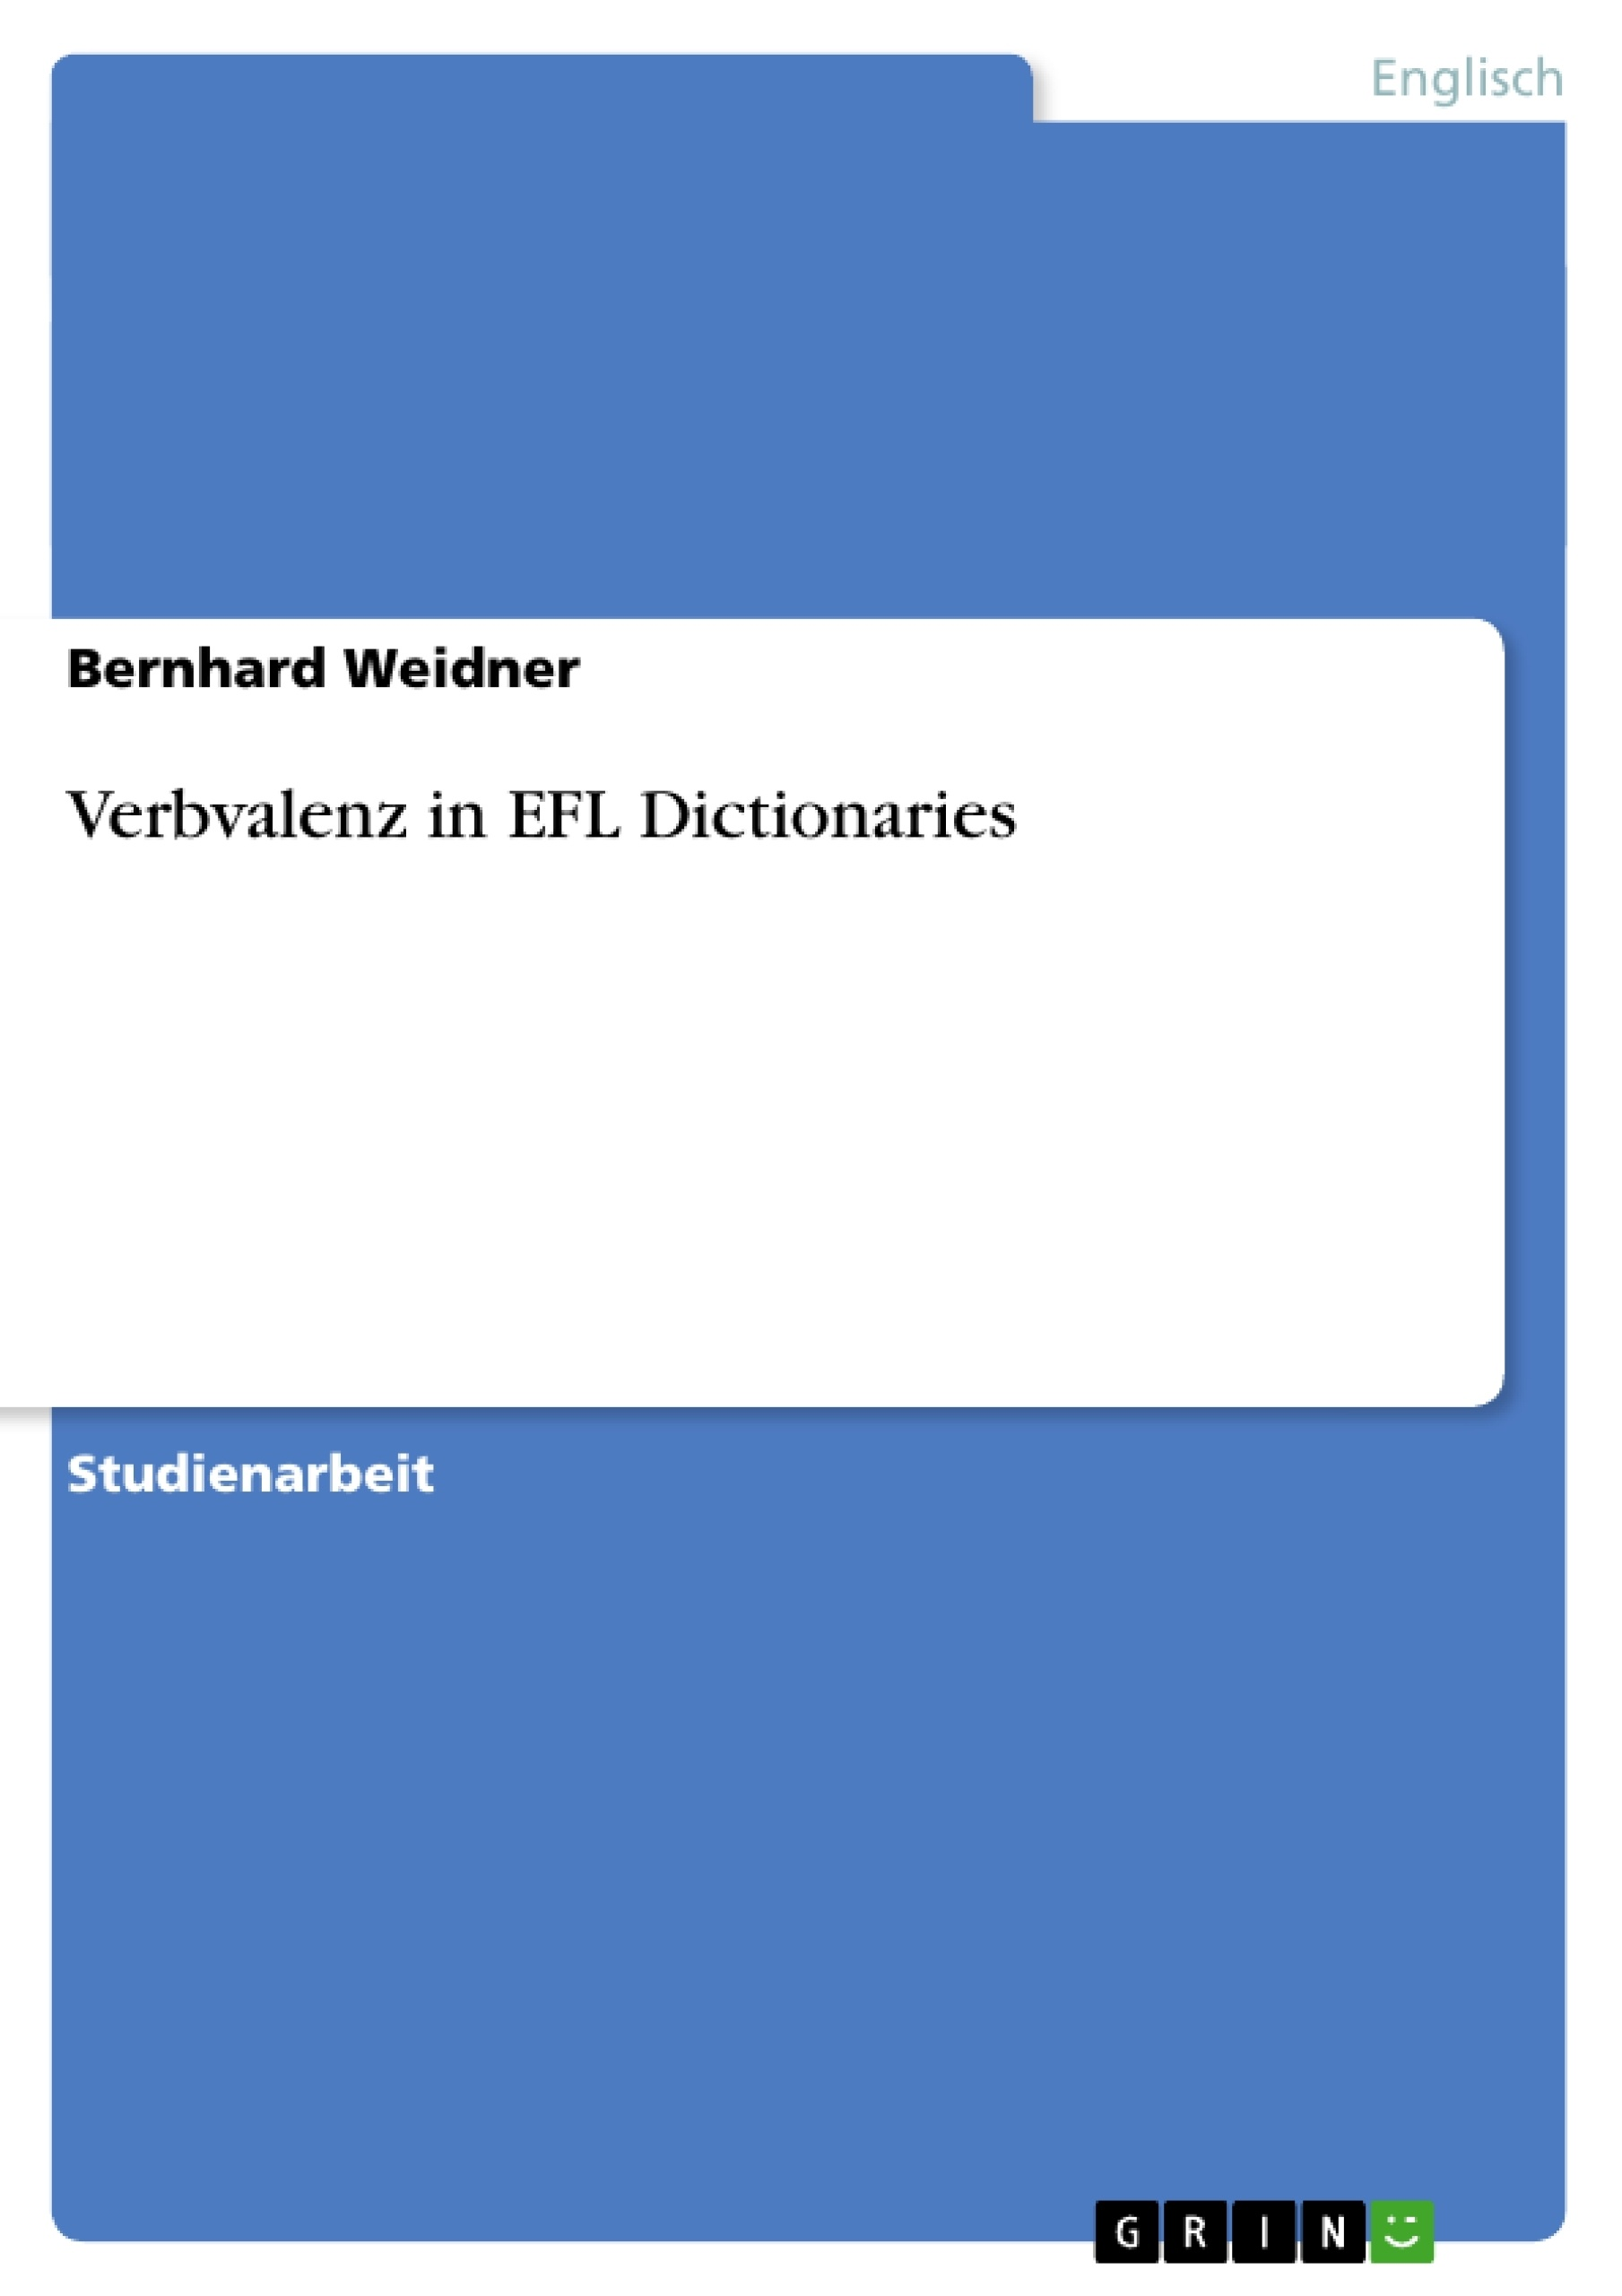 Titel: Verbvalenz in EFL Dictionaries